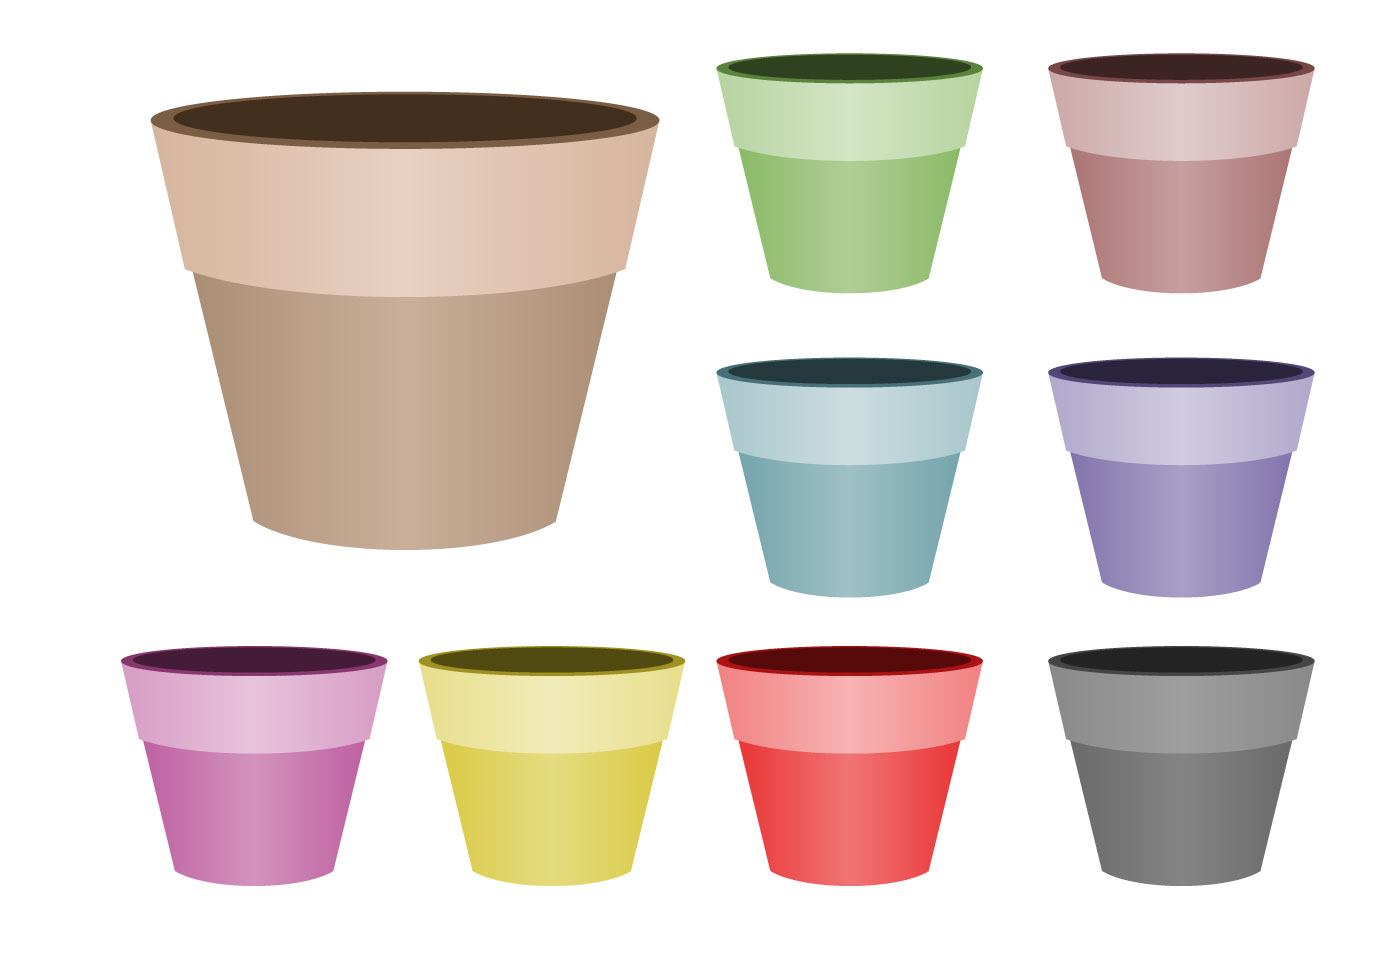 Flower pot Icons - 1,217 free vector icons - SVG, PSD, PNG ...